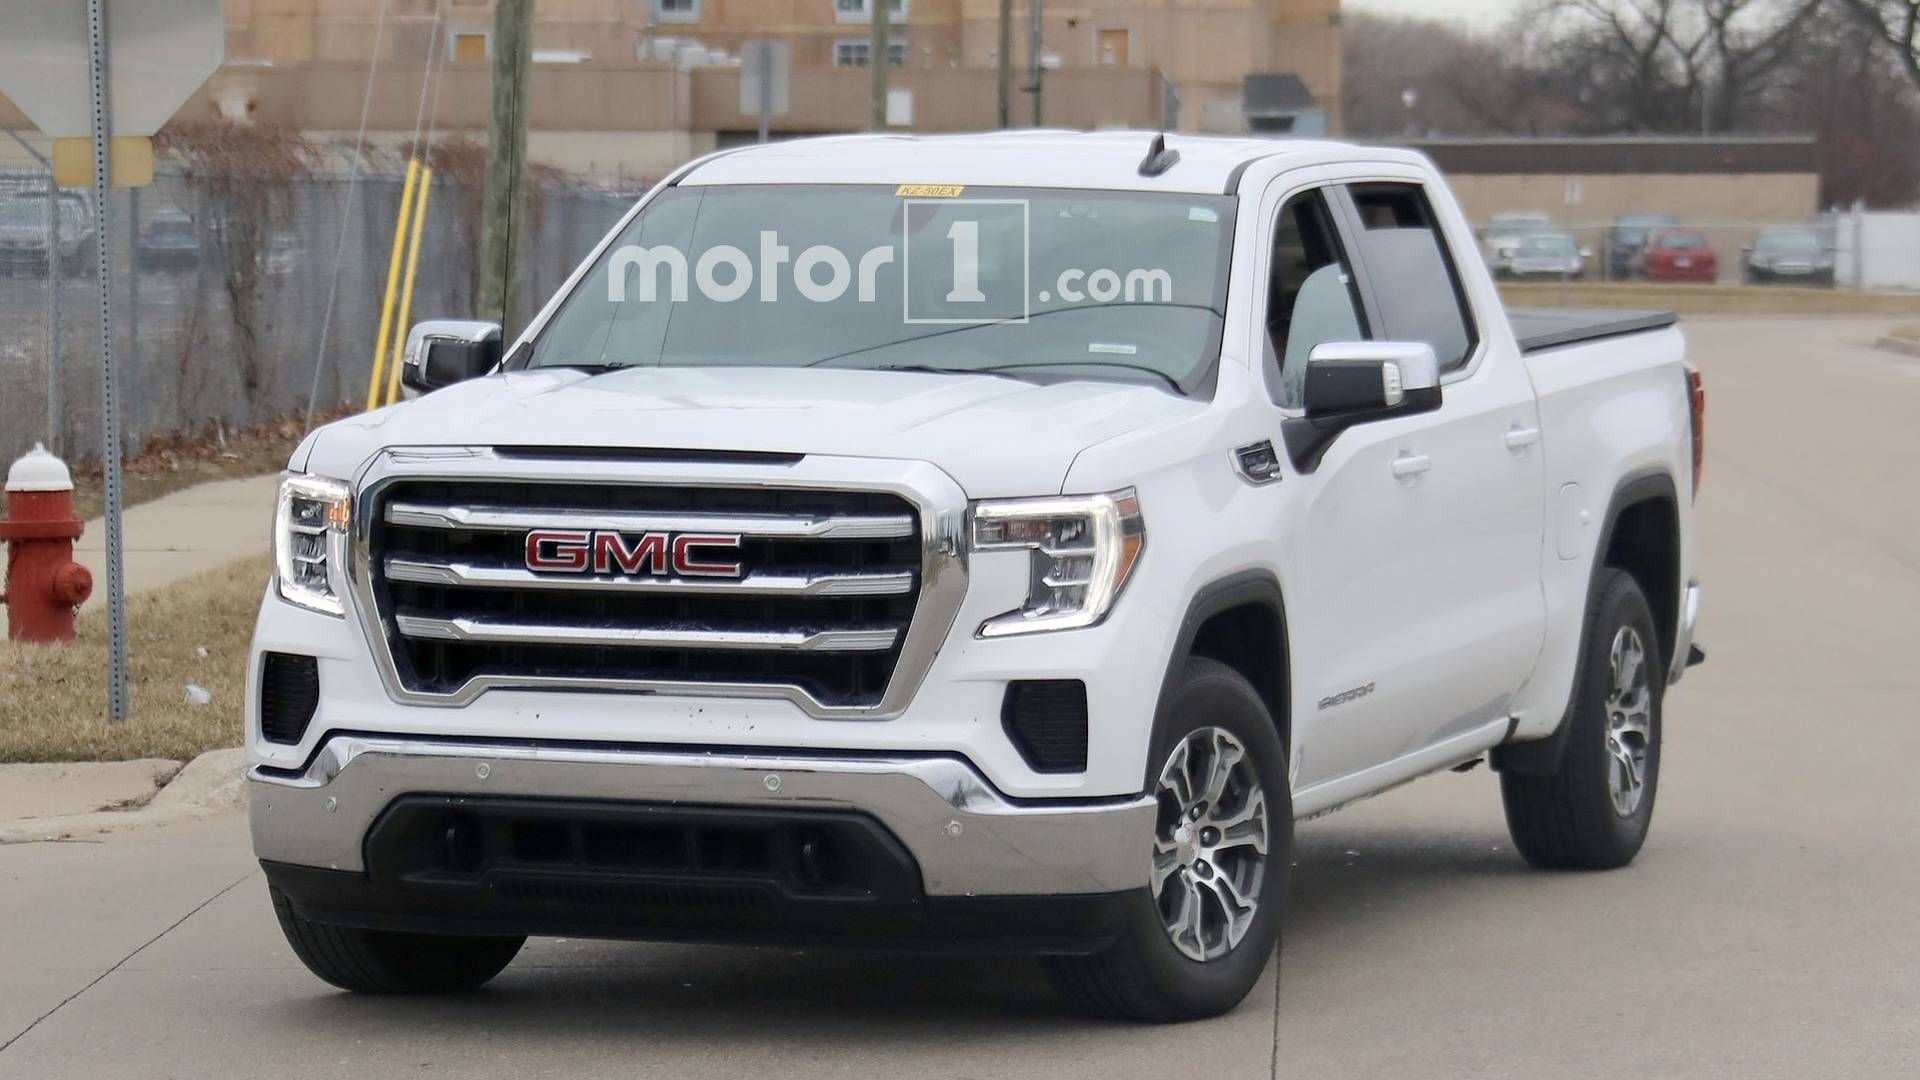 81 All New Best Gmc For 2019 First Drive Price Performance And Review Prices by Best Gmc For 2019 First Drive Price Performance And Review